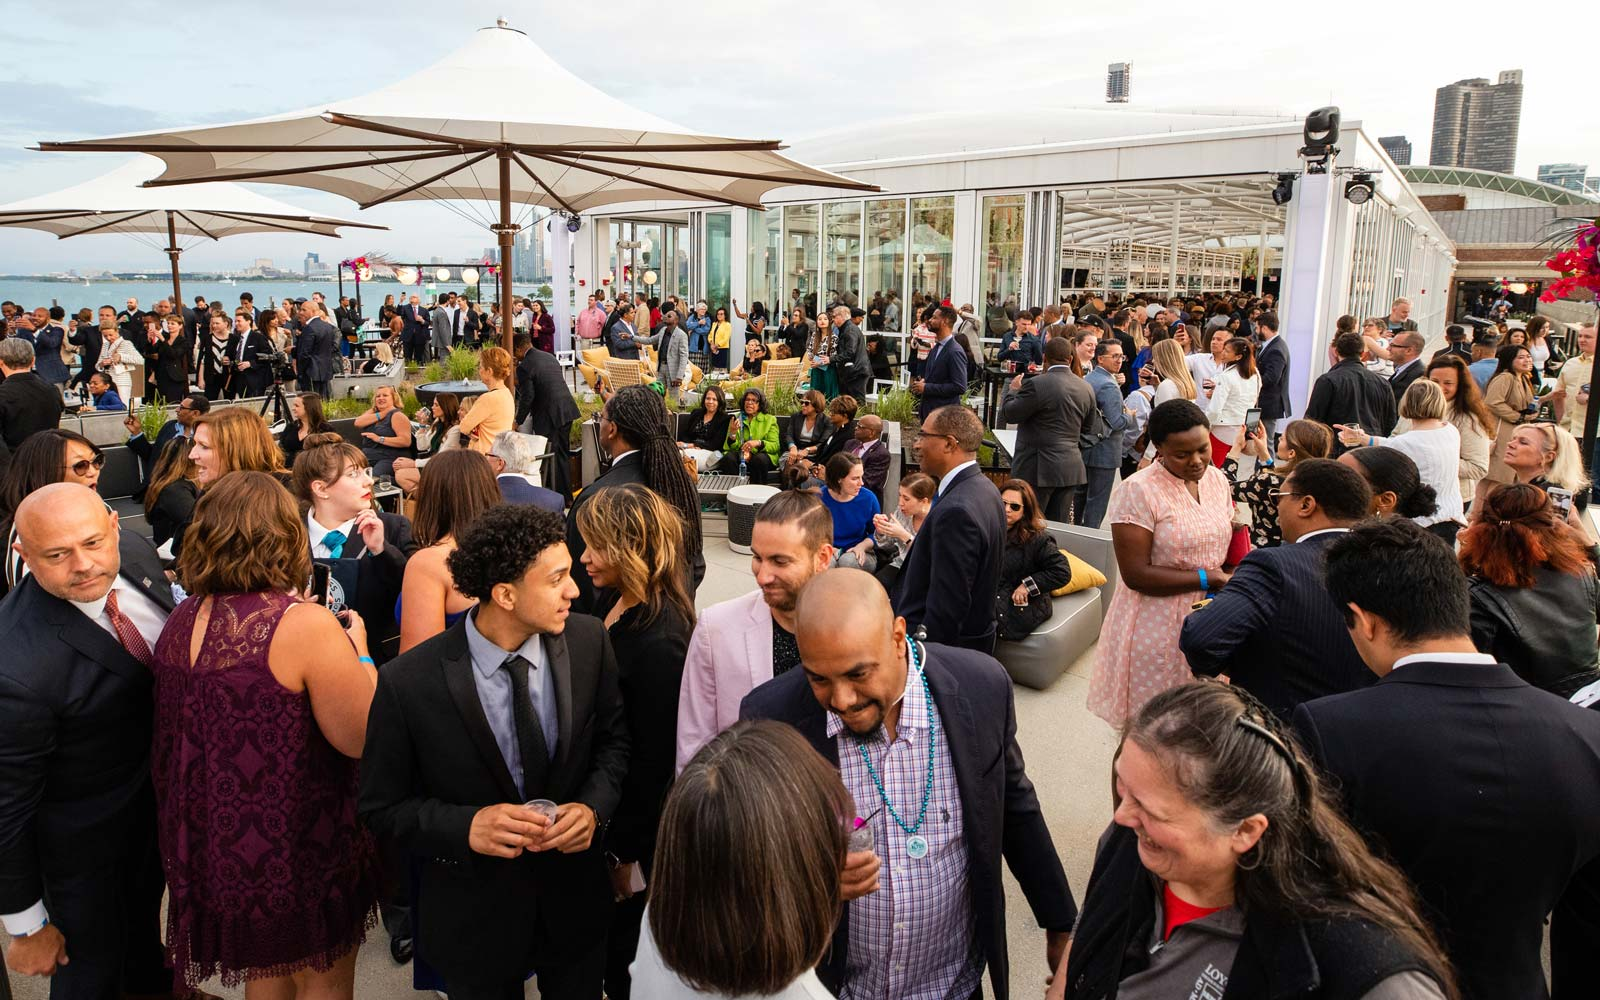 Chicago Is Now Home to the 'World's Largest Rooftop Bar'